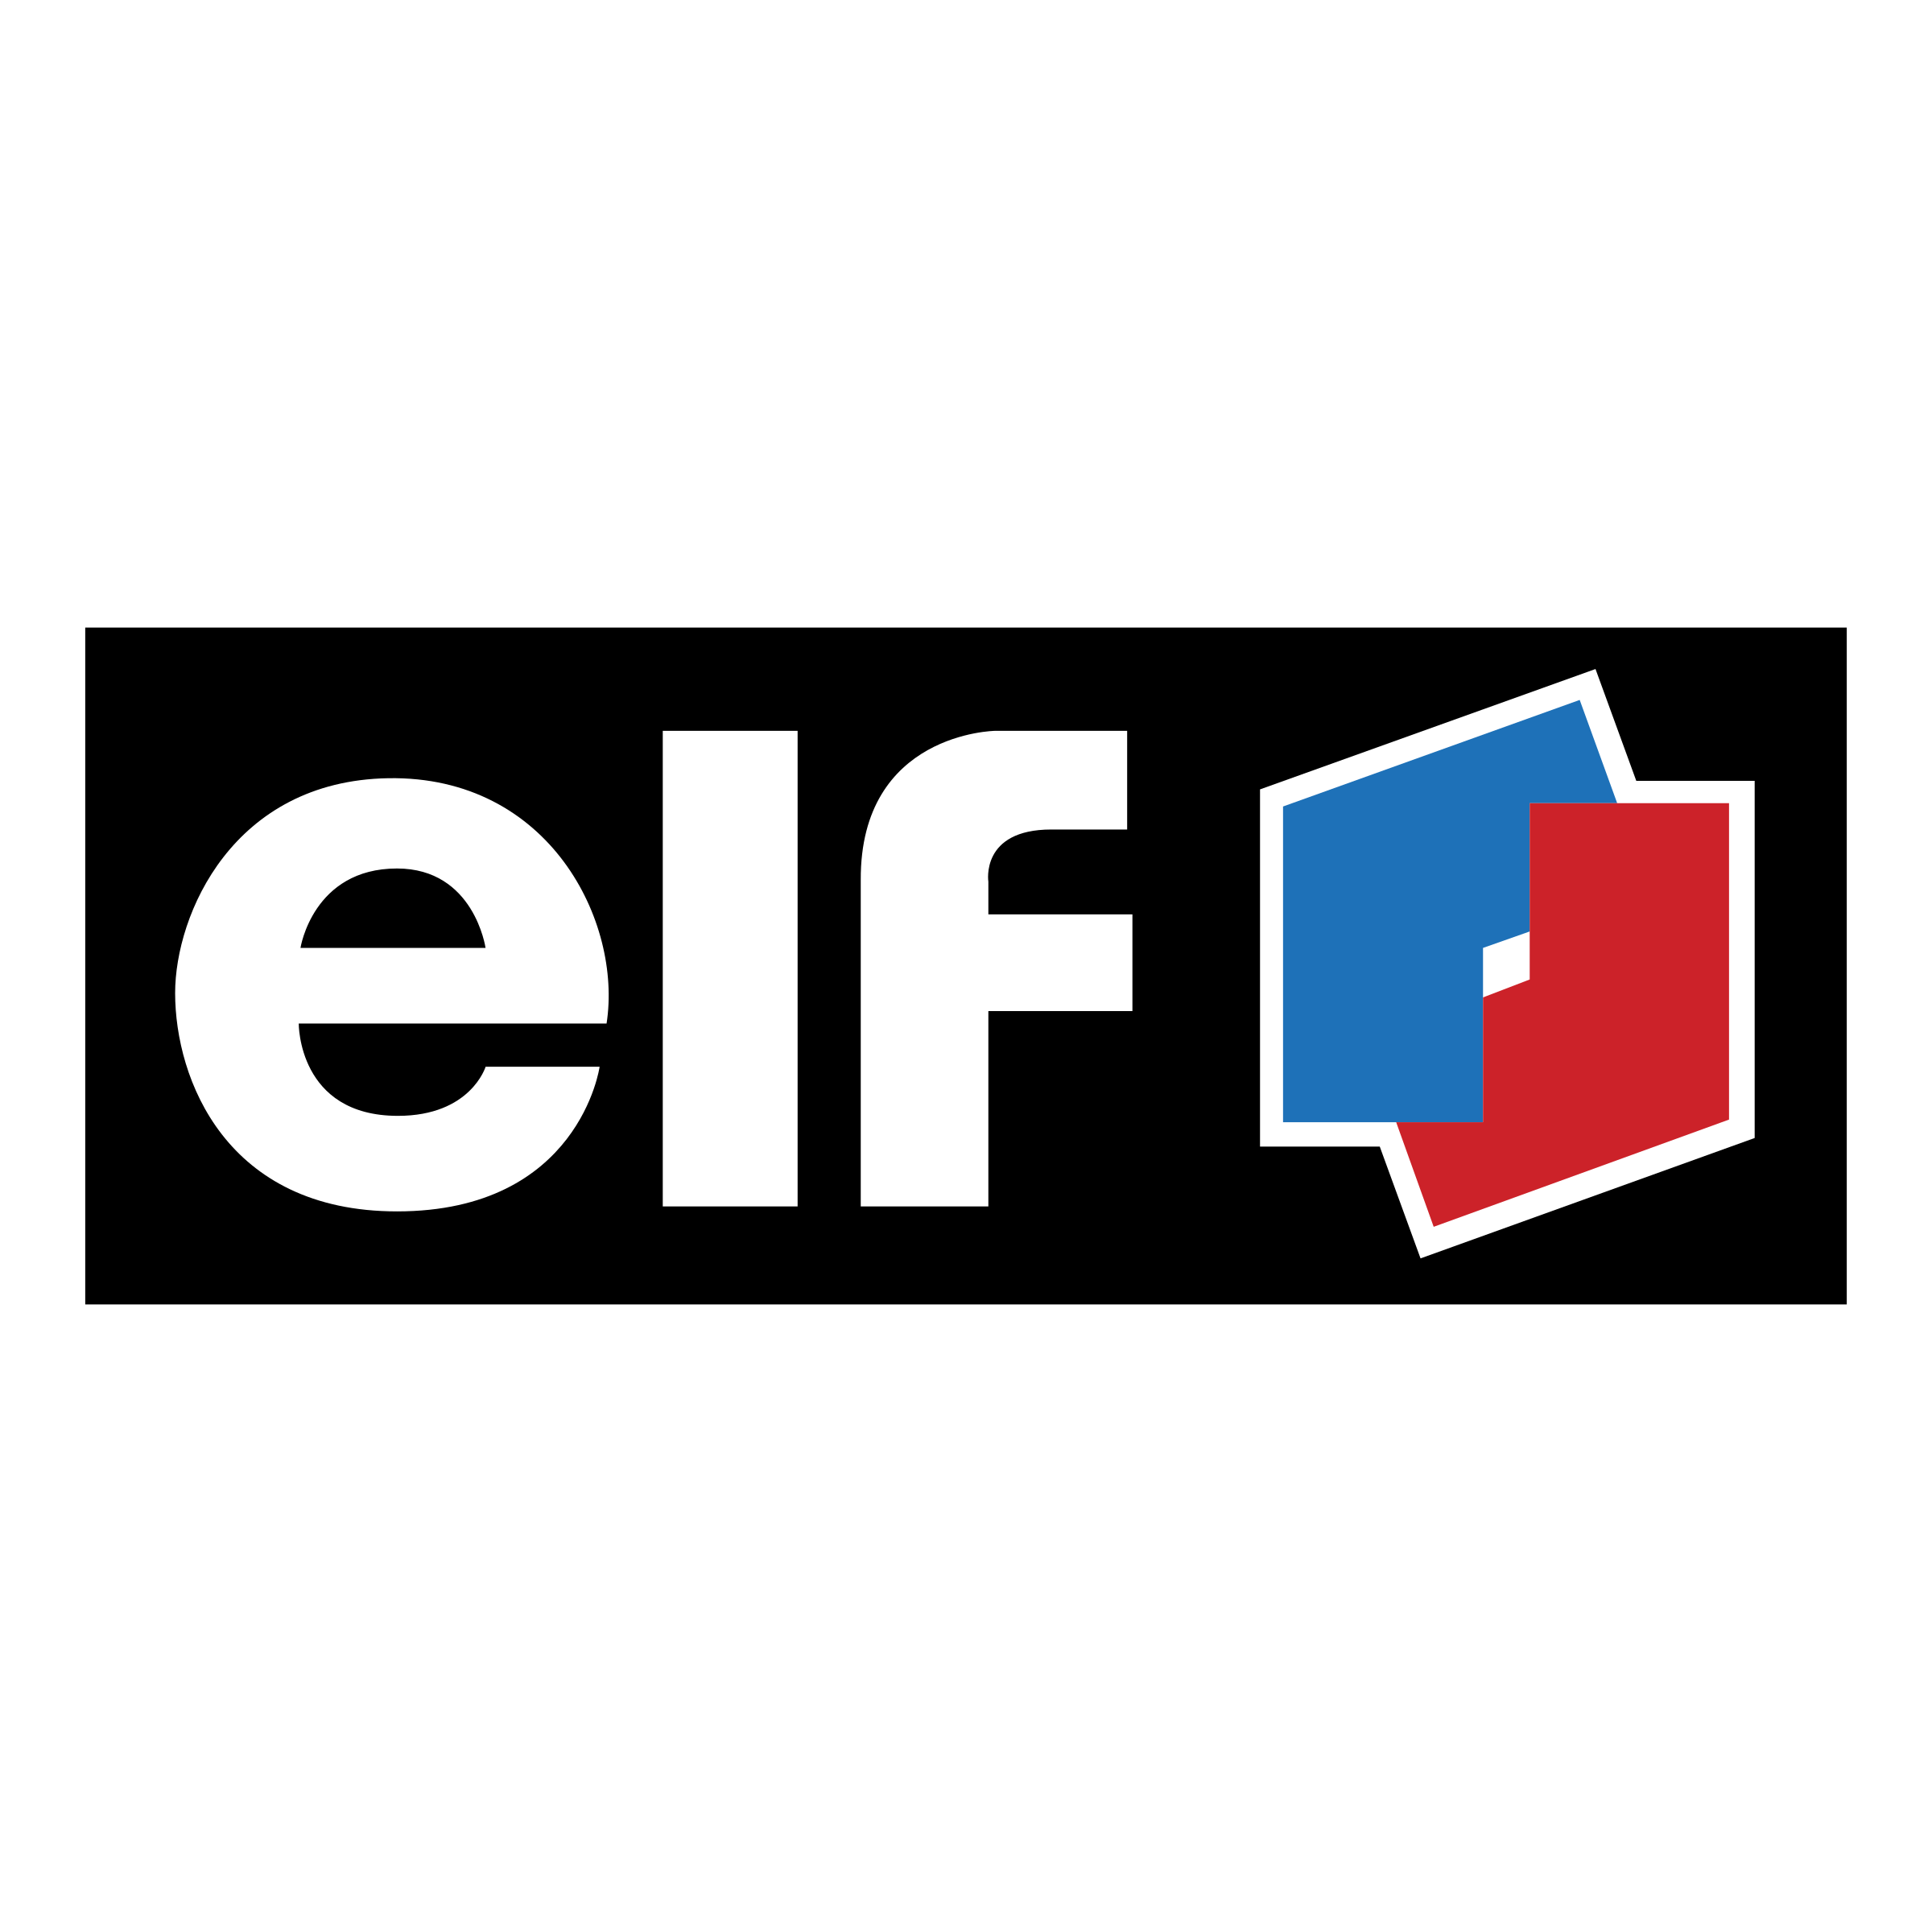 Elf logo png. Transparent svg vector freebie